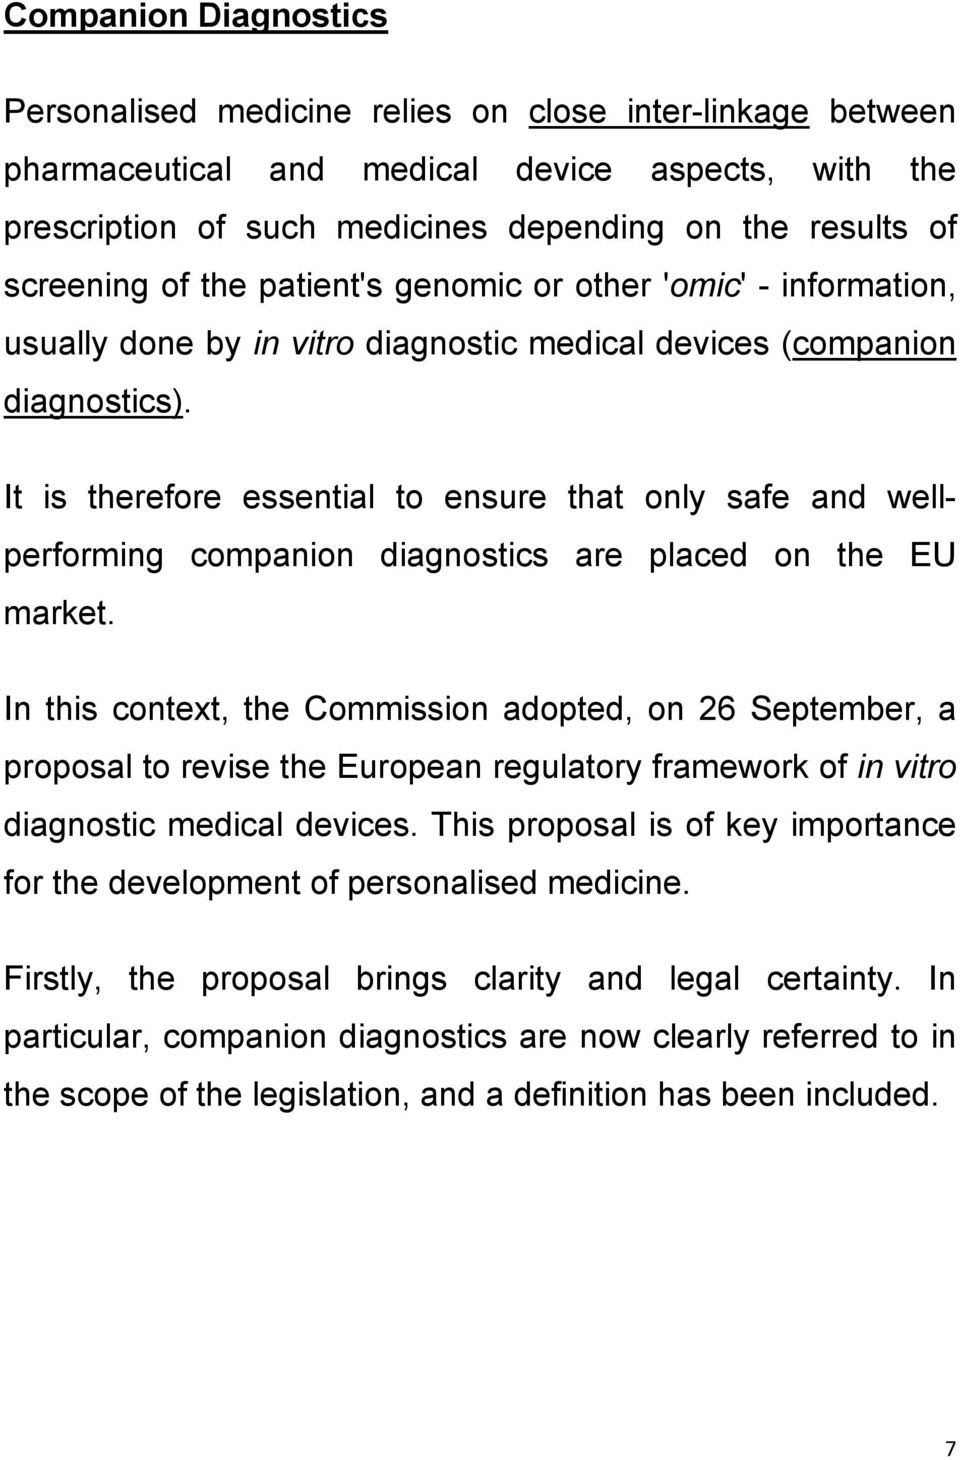 It is therefore essential to ensure that only safe and wellperforming companion diagnostics are placed on the EU market.